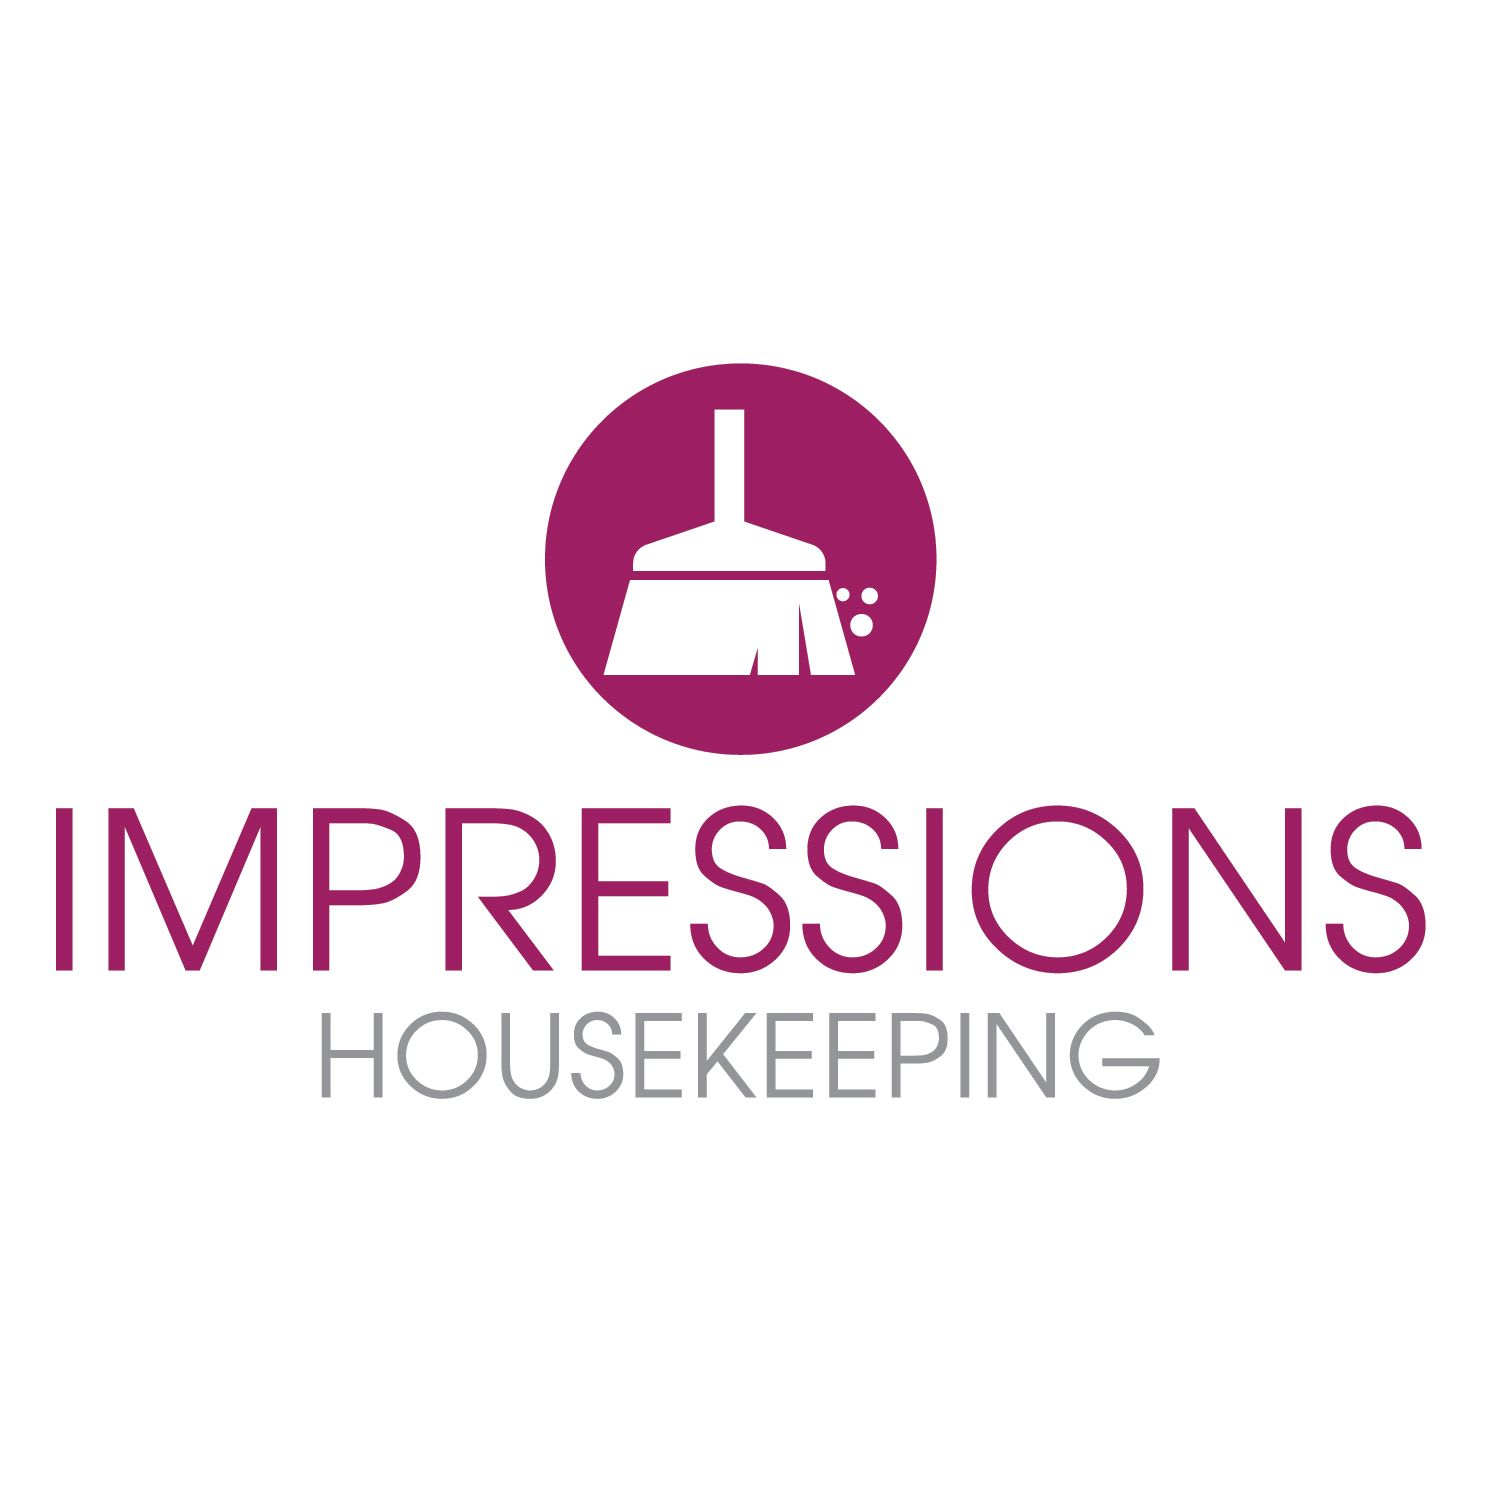 Senior living house keeping impressions in Chattanooga.